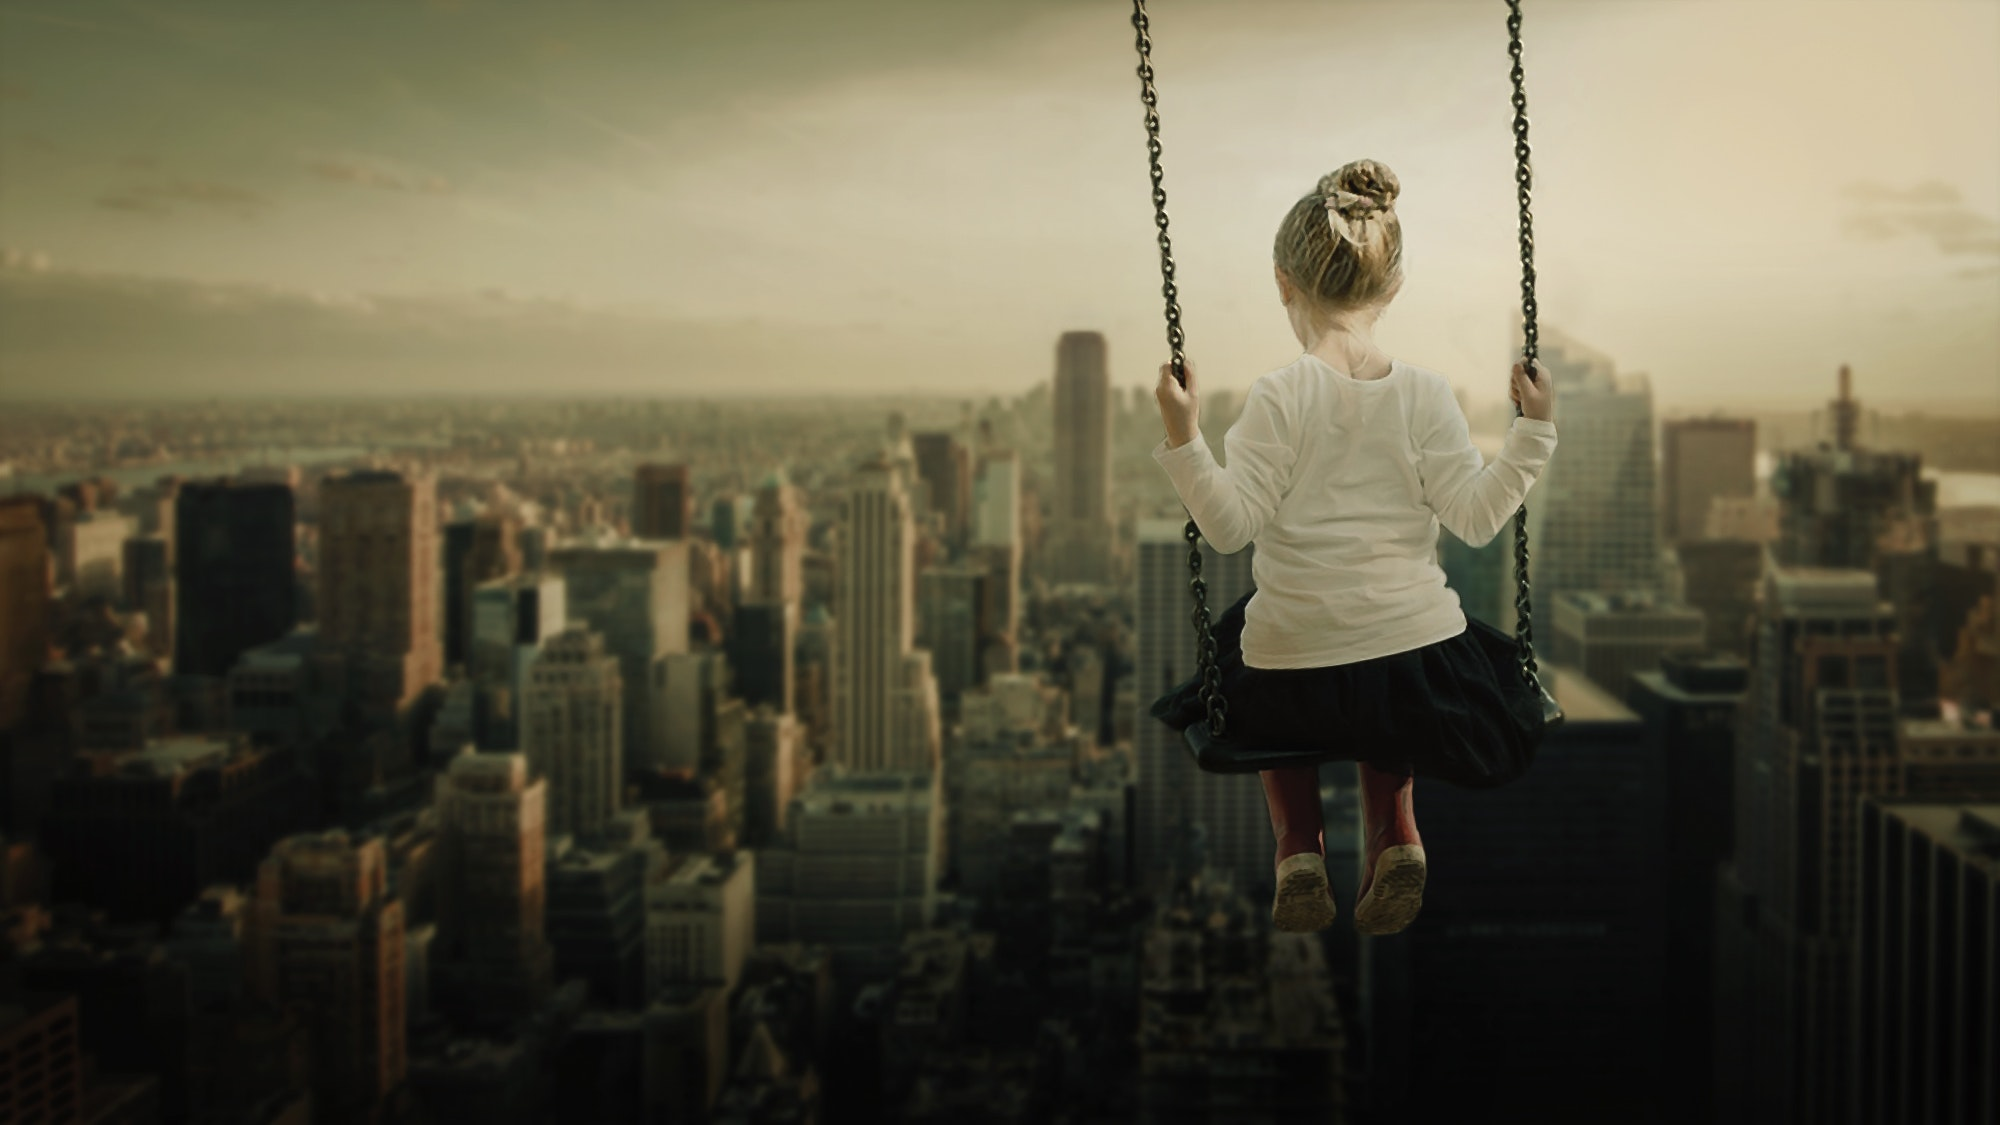 Woman Looking at Cityscape, Architecture, Outdoors, Swing, Skyscraper, HQ Photo